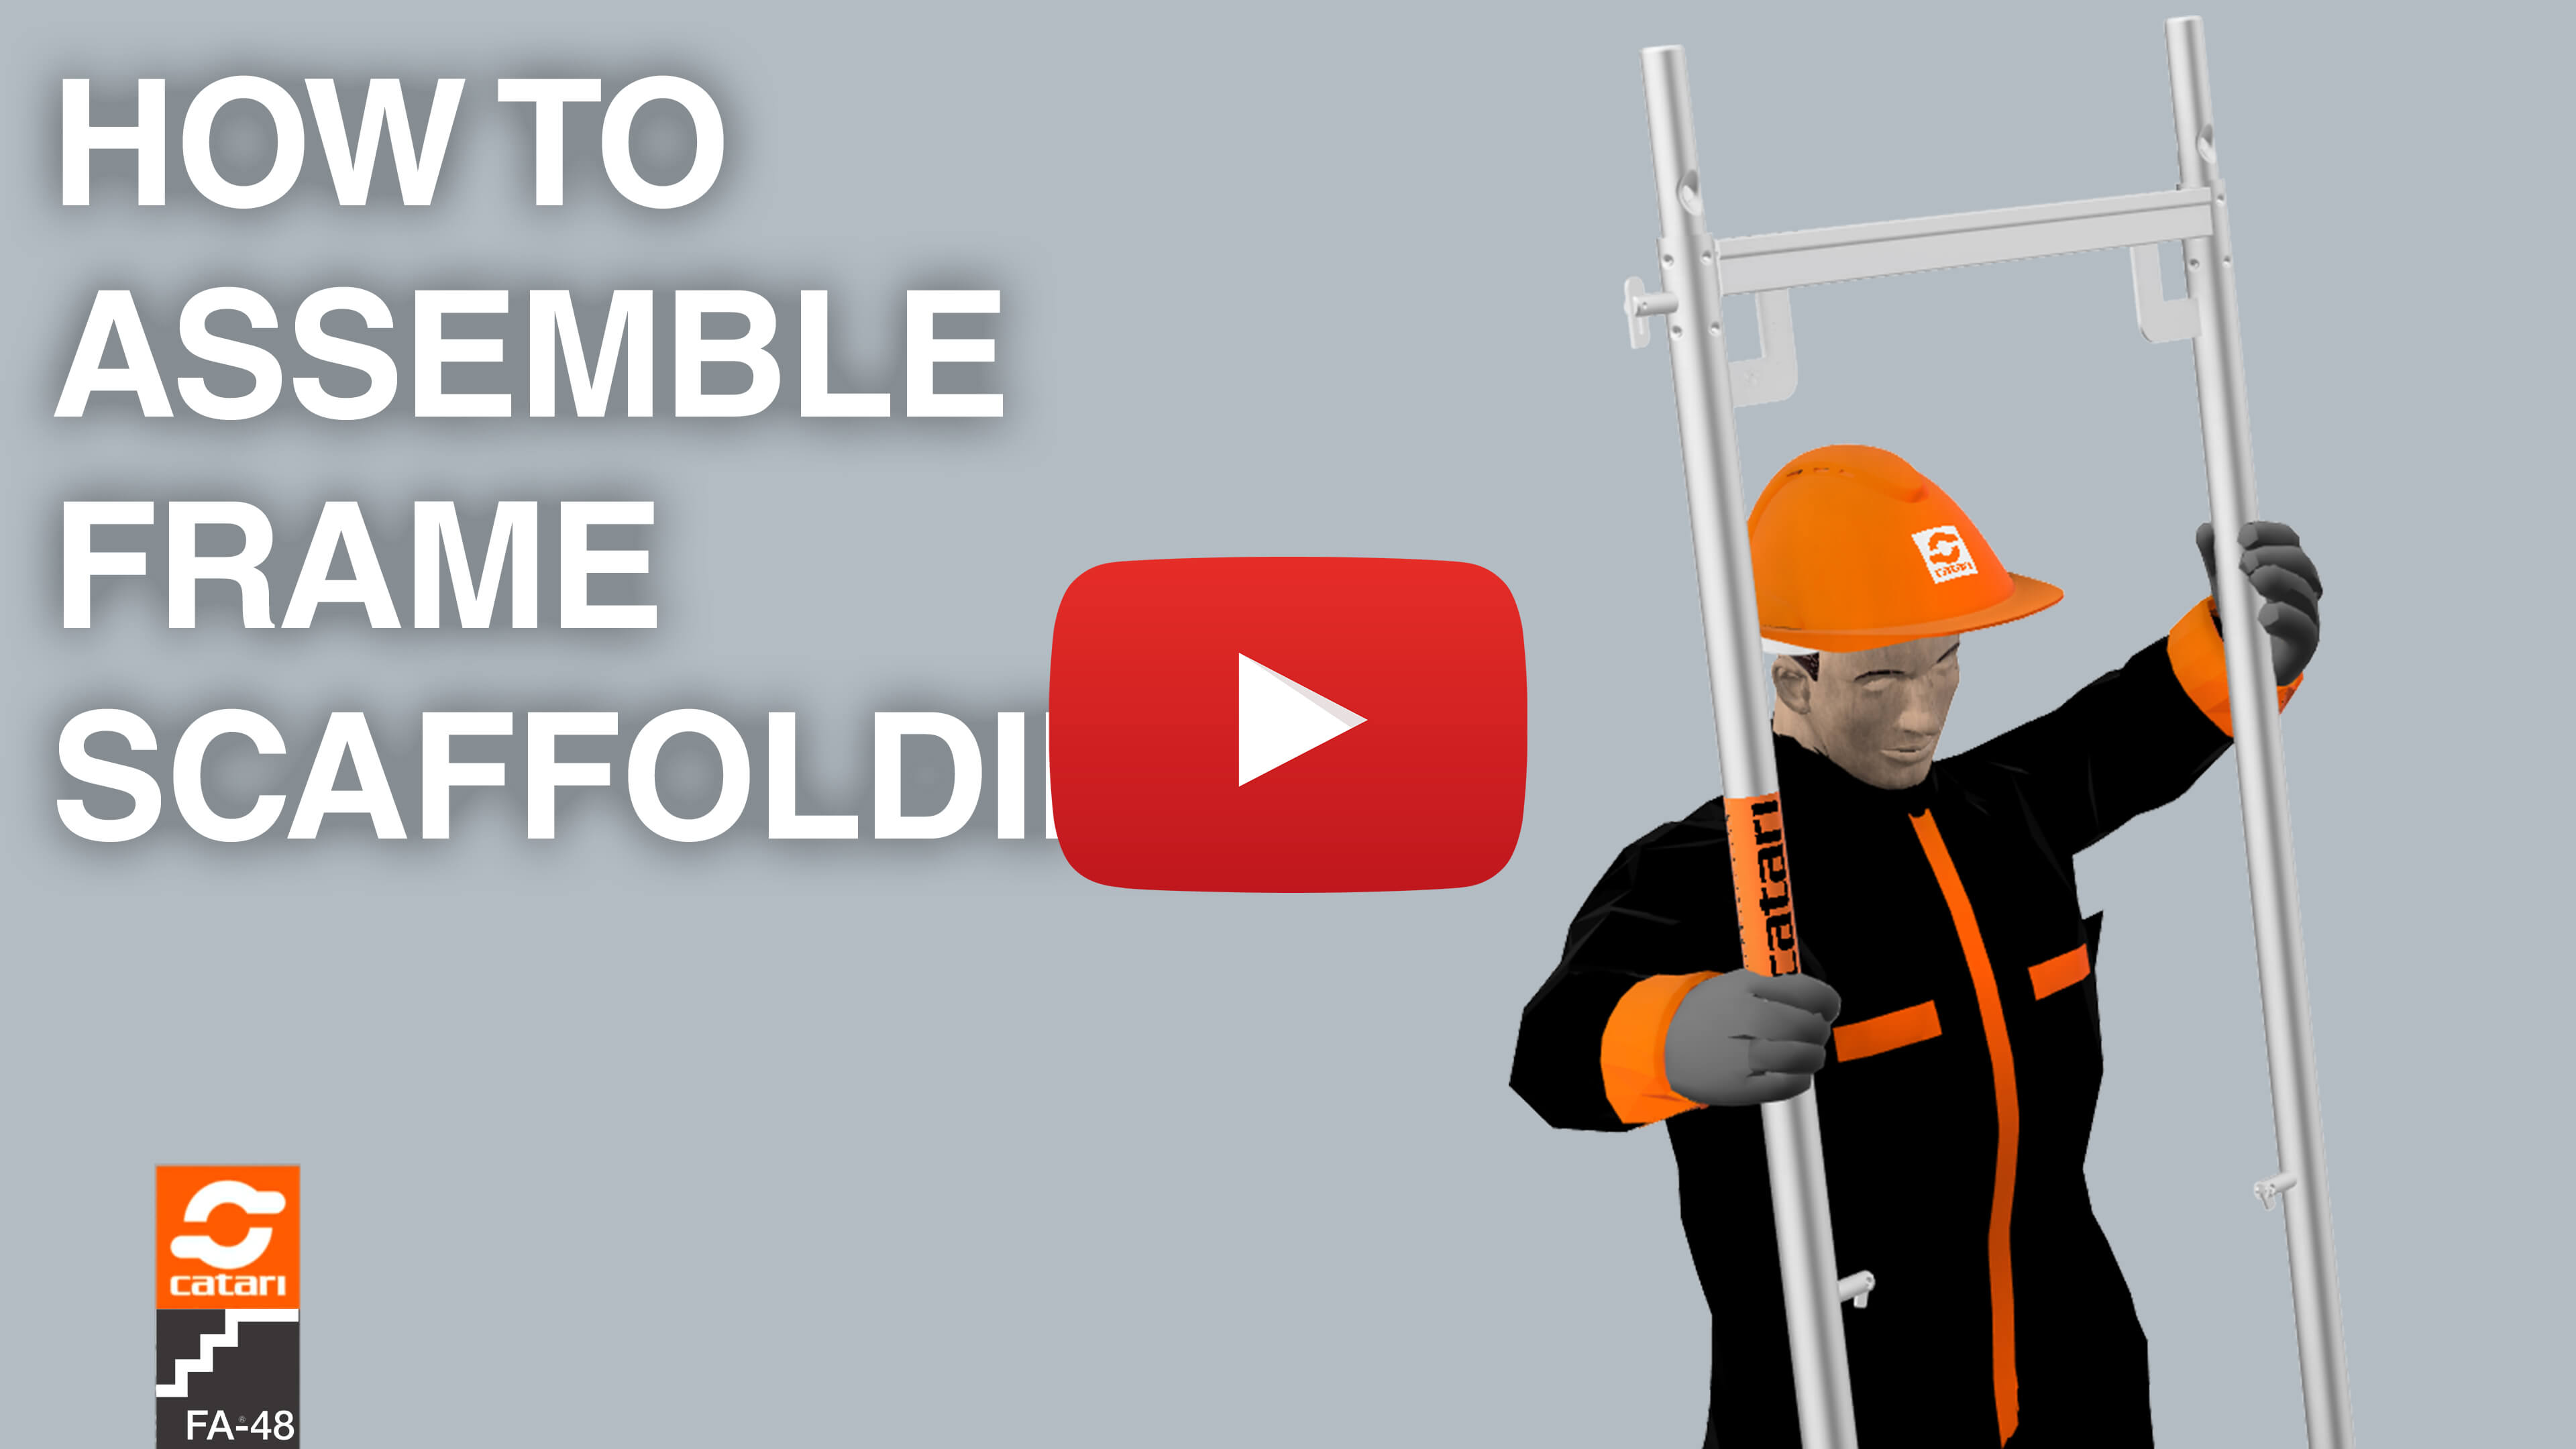 catari fa-48 frame scaffolding video